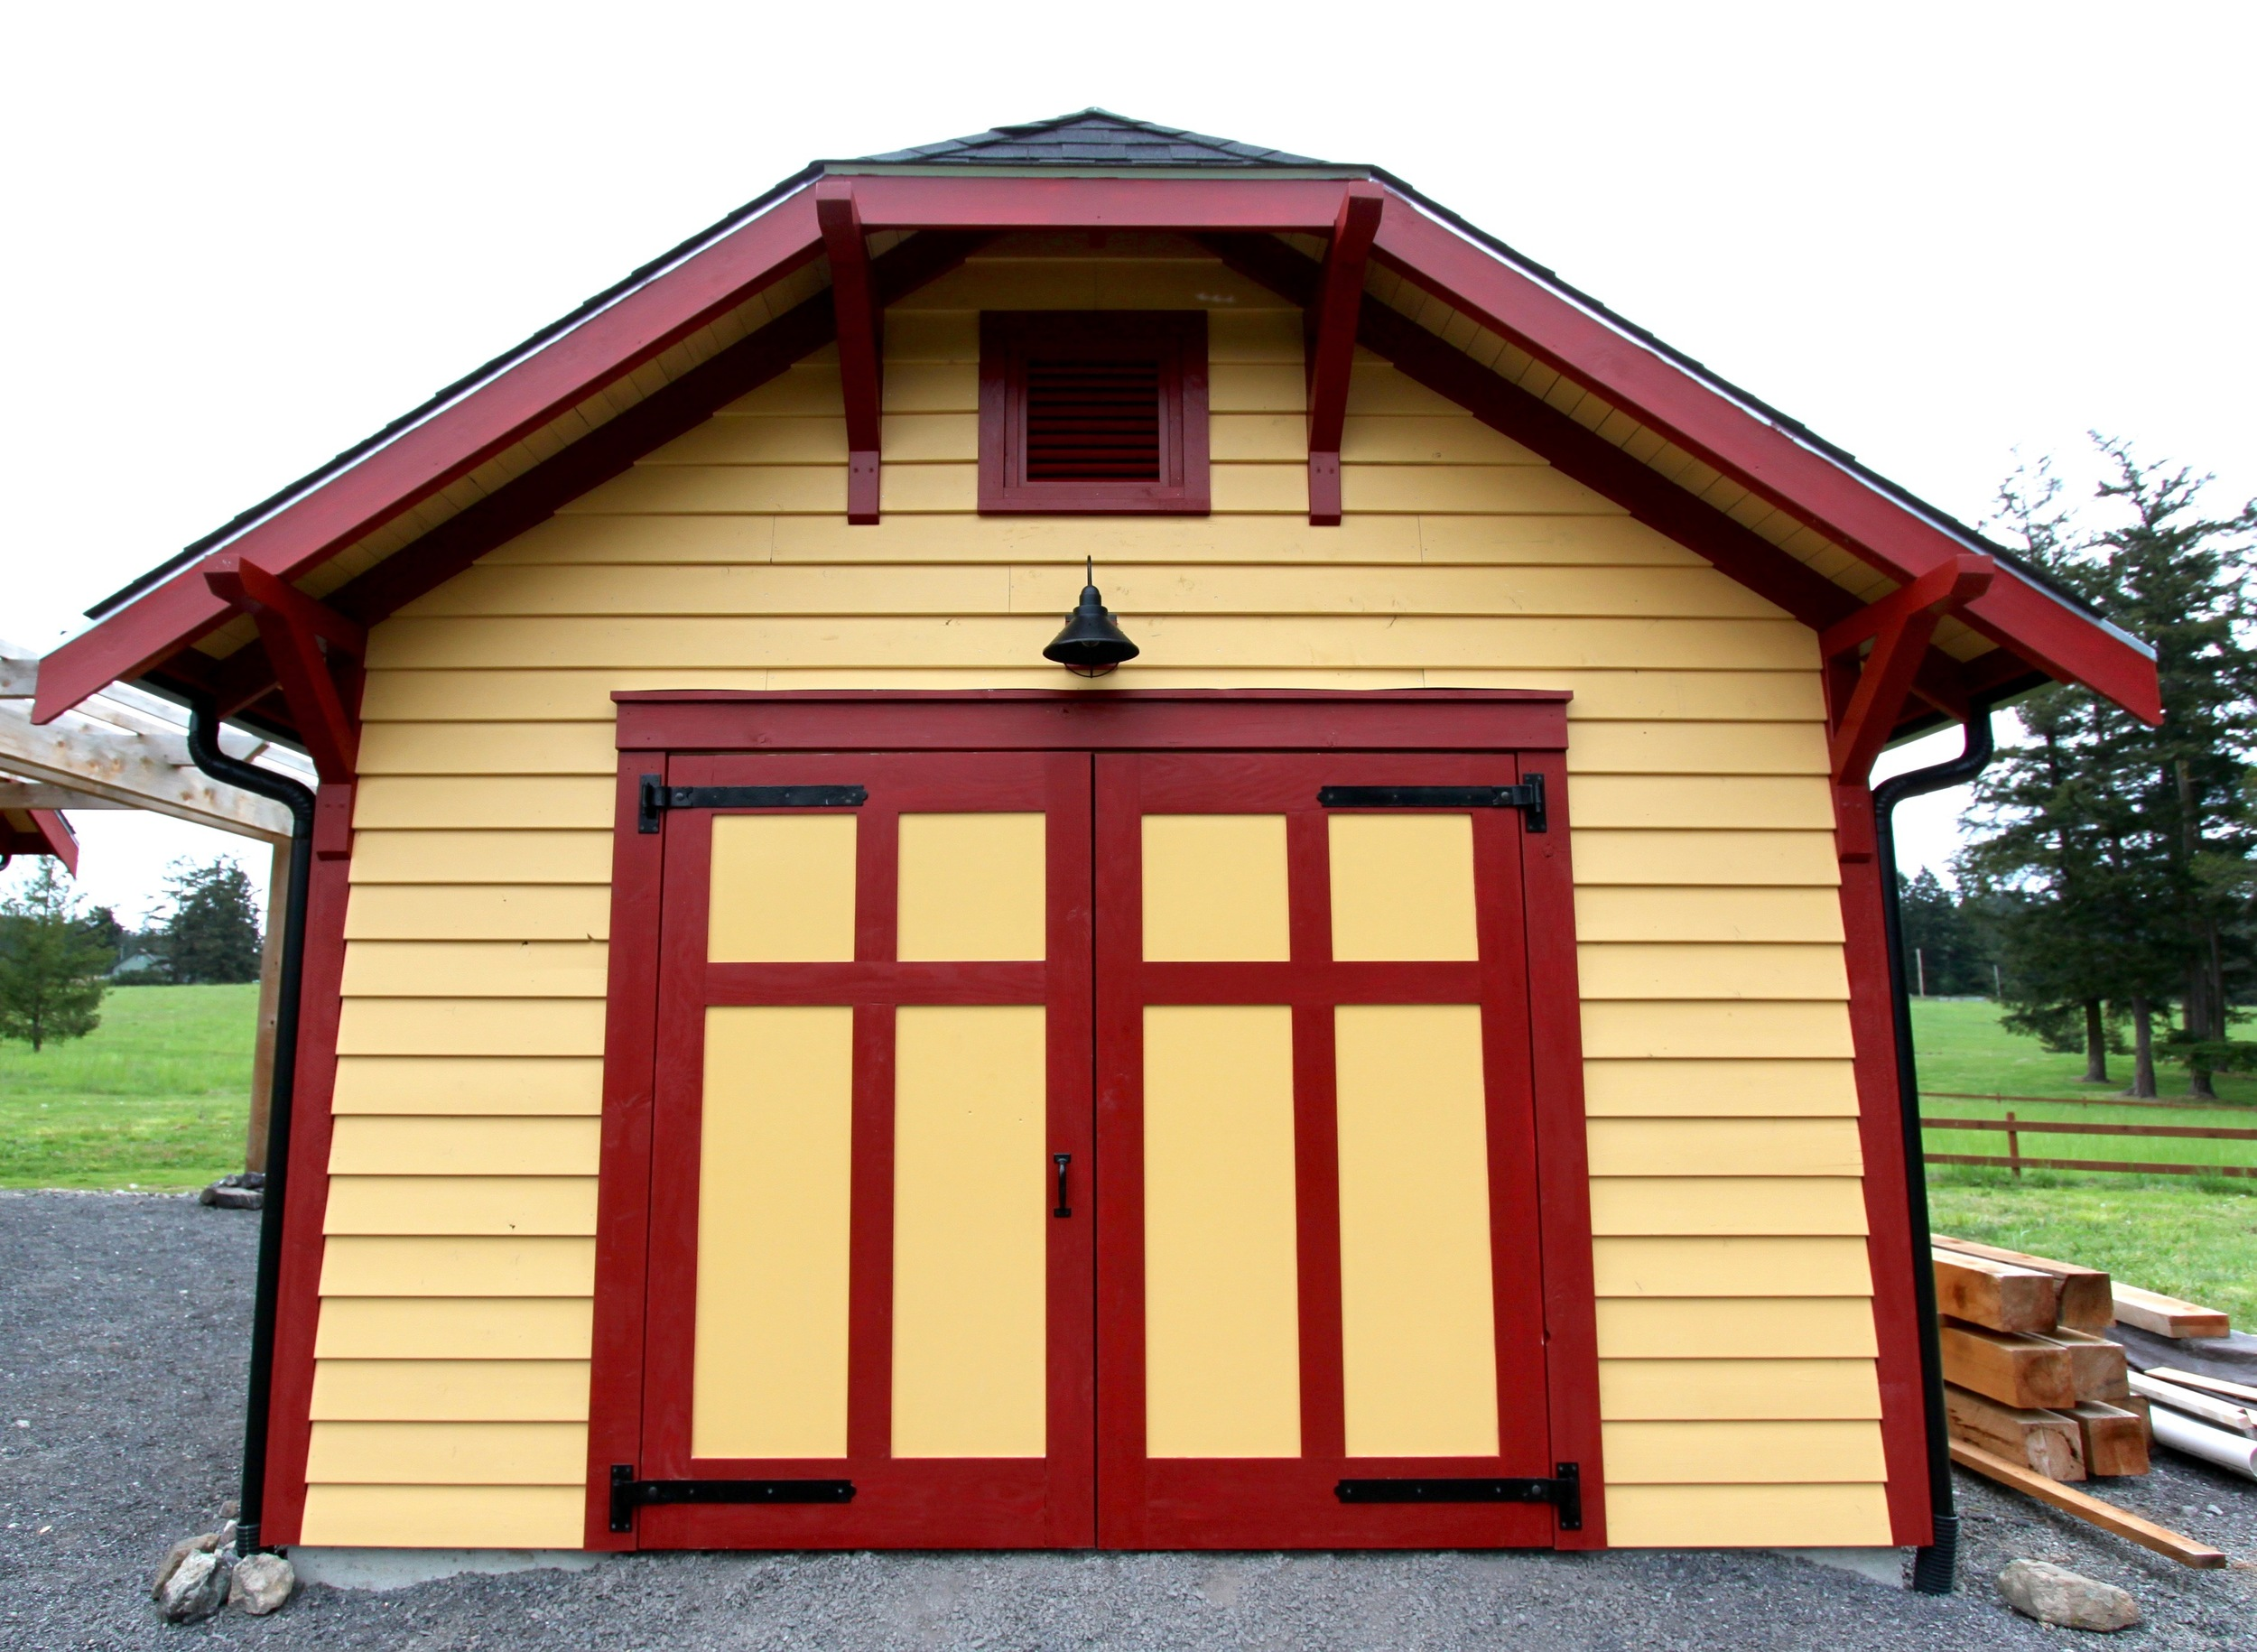 Hand built carriage house doors with steel strap hinges.